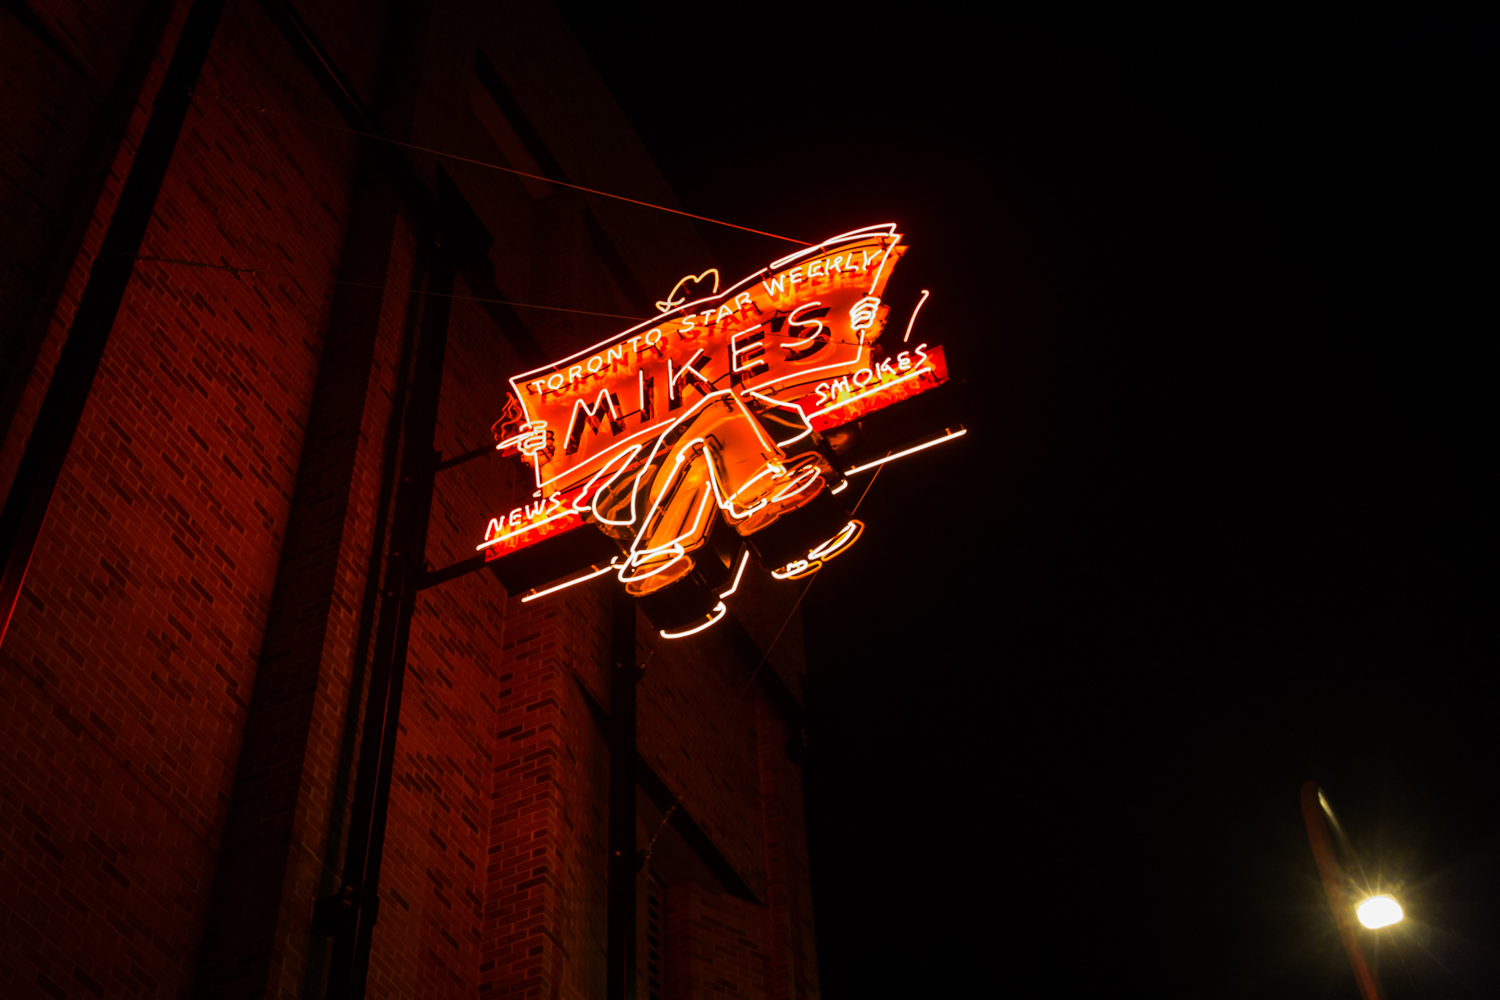 The Mike's News sign, which adorned 10062 Jasper Avenue from 1934 until 1979.